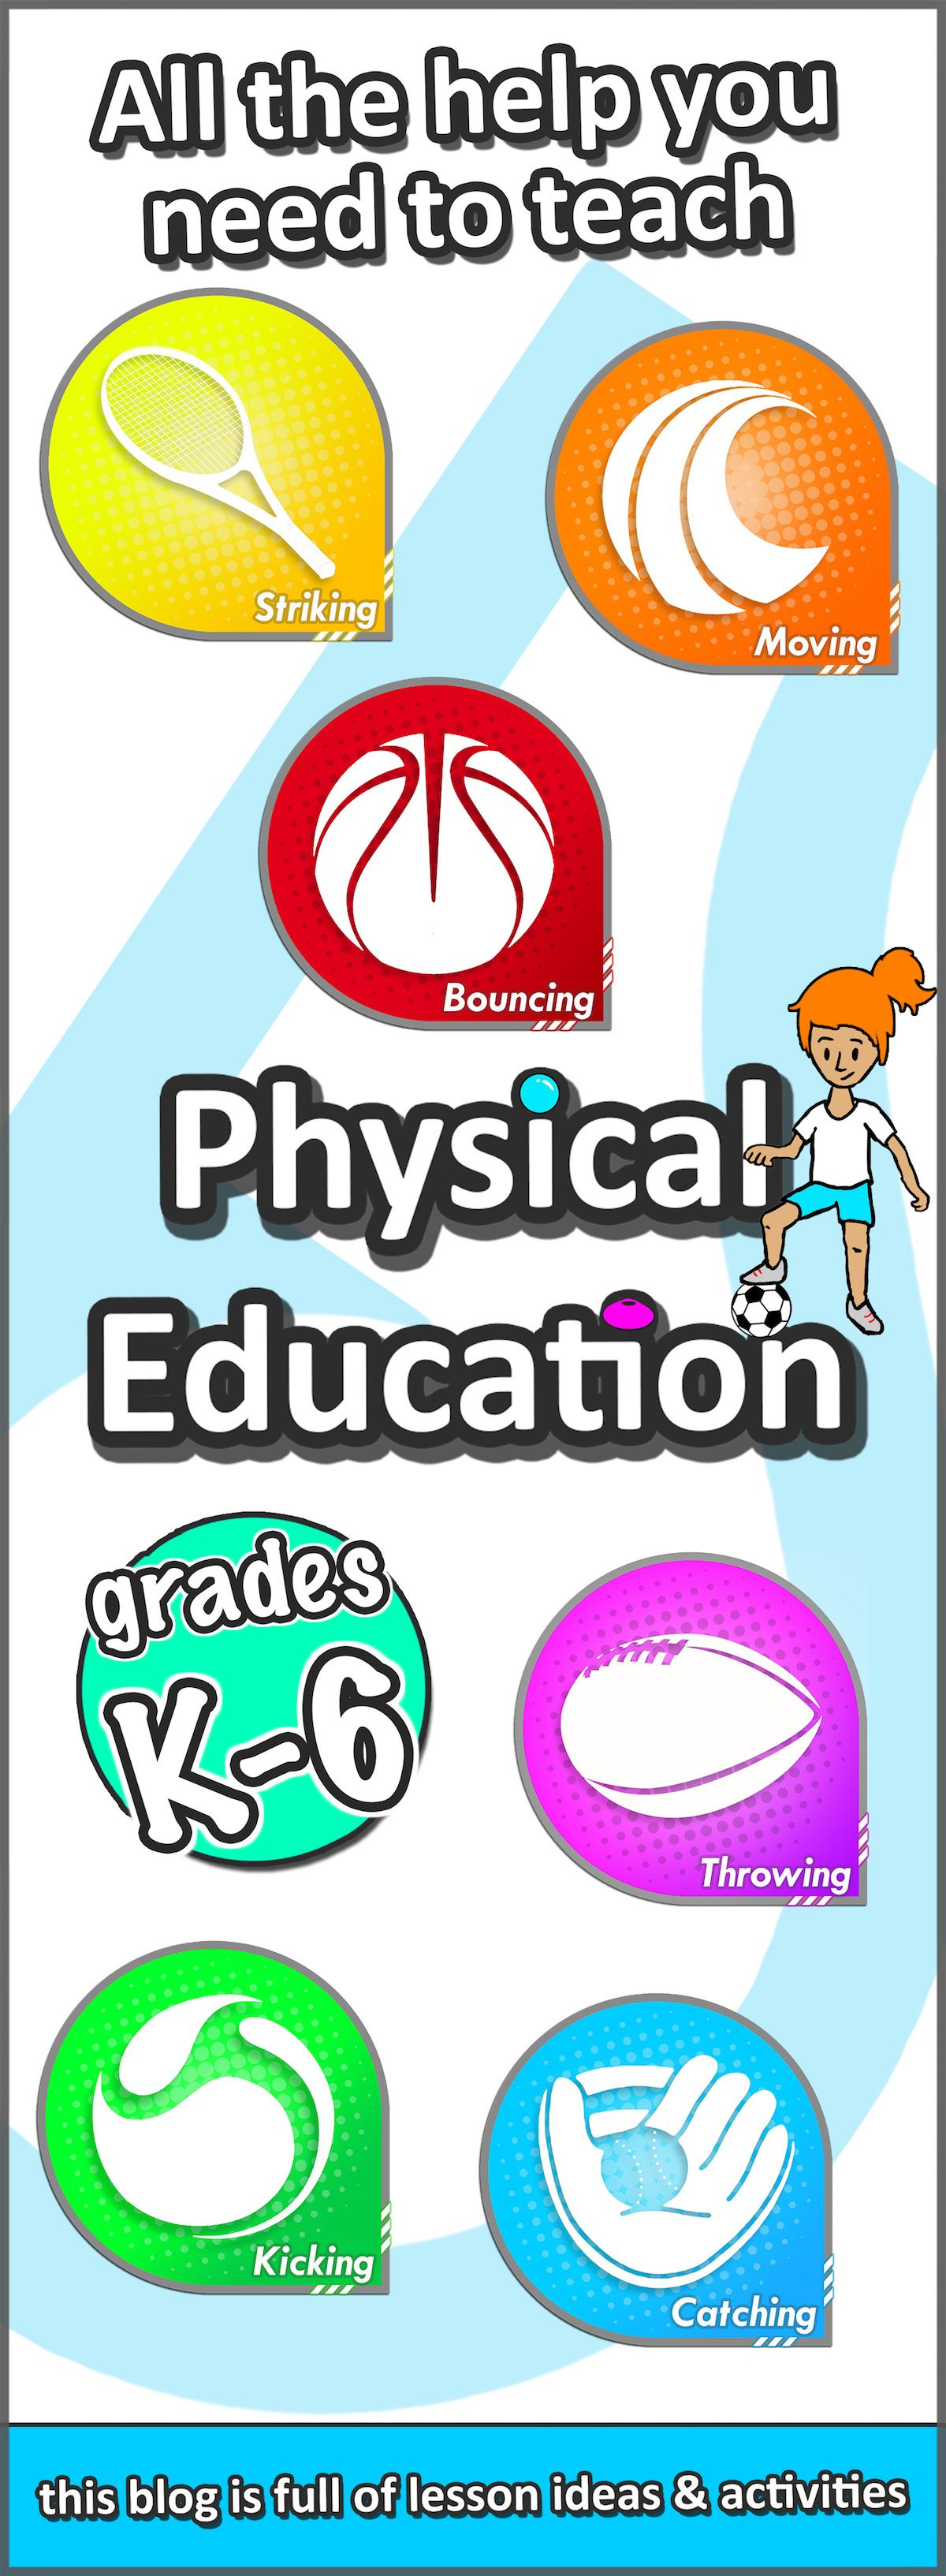 Pe Lesson Ideas How To Teach Sport Skills And Game Plans For Your Grades K 6 At Elementary